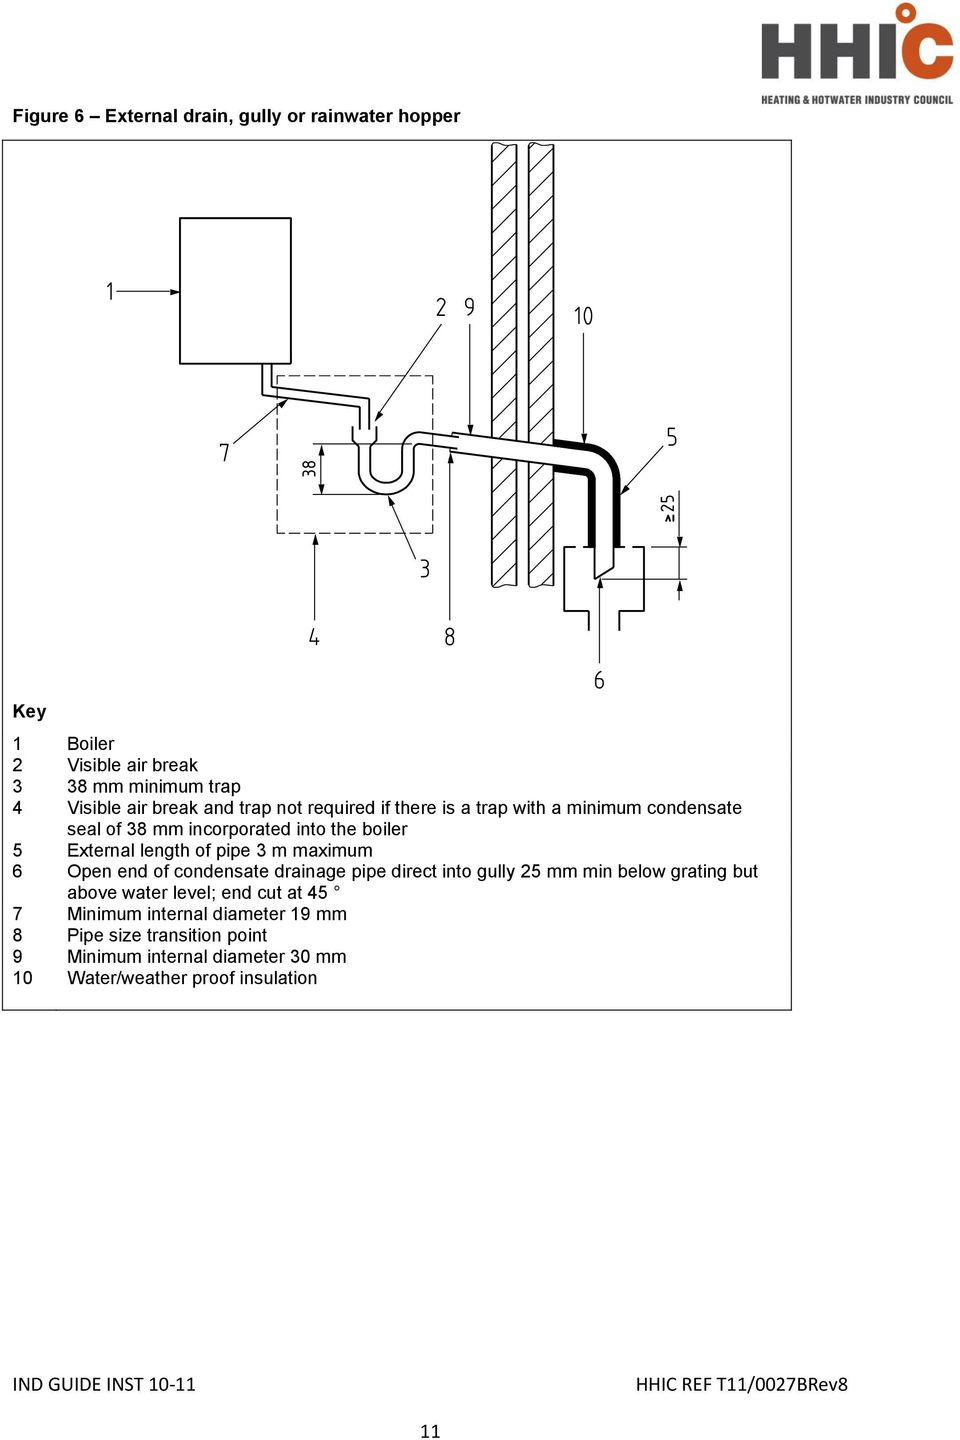 Industry Guidance For Installers On Condensate Drainage Pipe Piping Layout Tips M Maximum 6 Open End Of Direct Into Gully 25 Mm Min Below